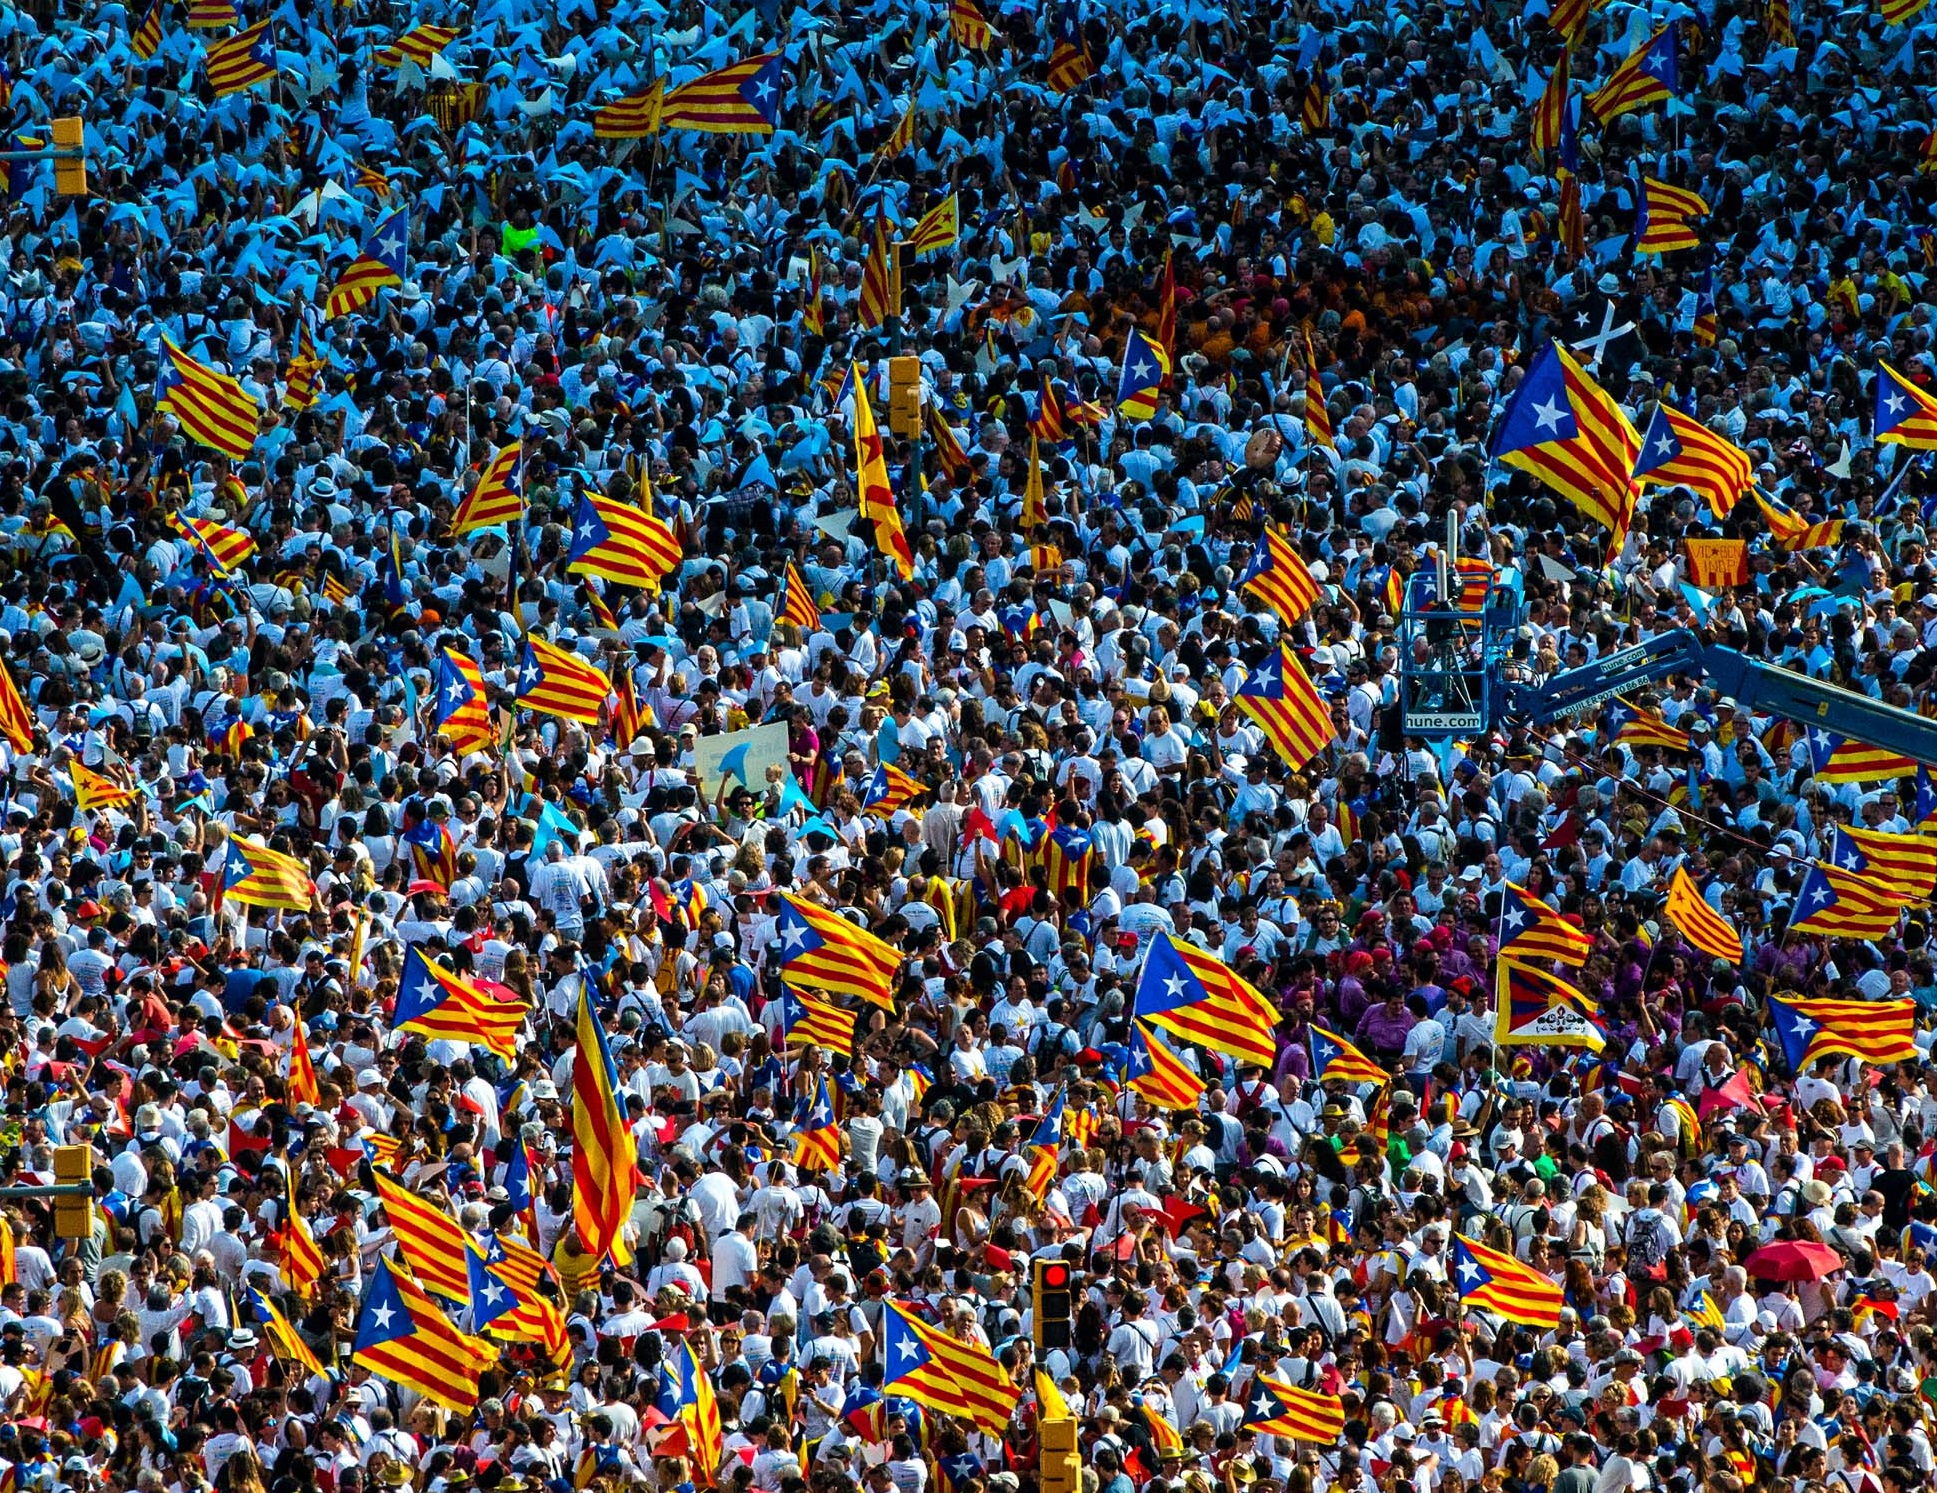 Over 400 Catalan officials face indictment under the constitution which enshrines Franco's idea of an indivisible Spain                  Photograph: David Ramos/Getty Images